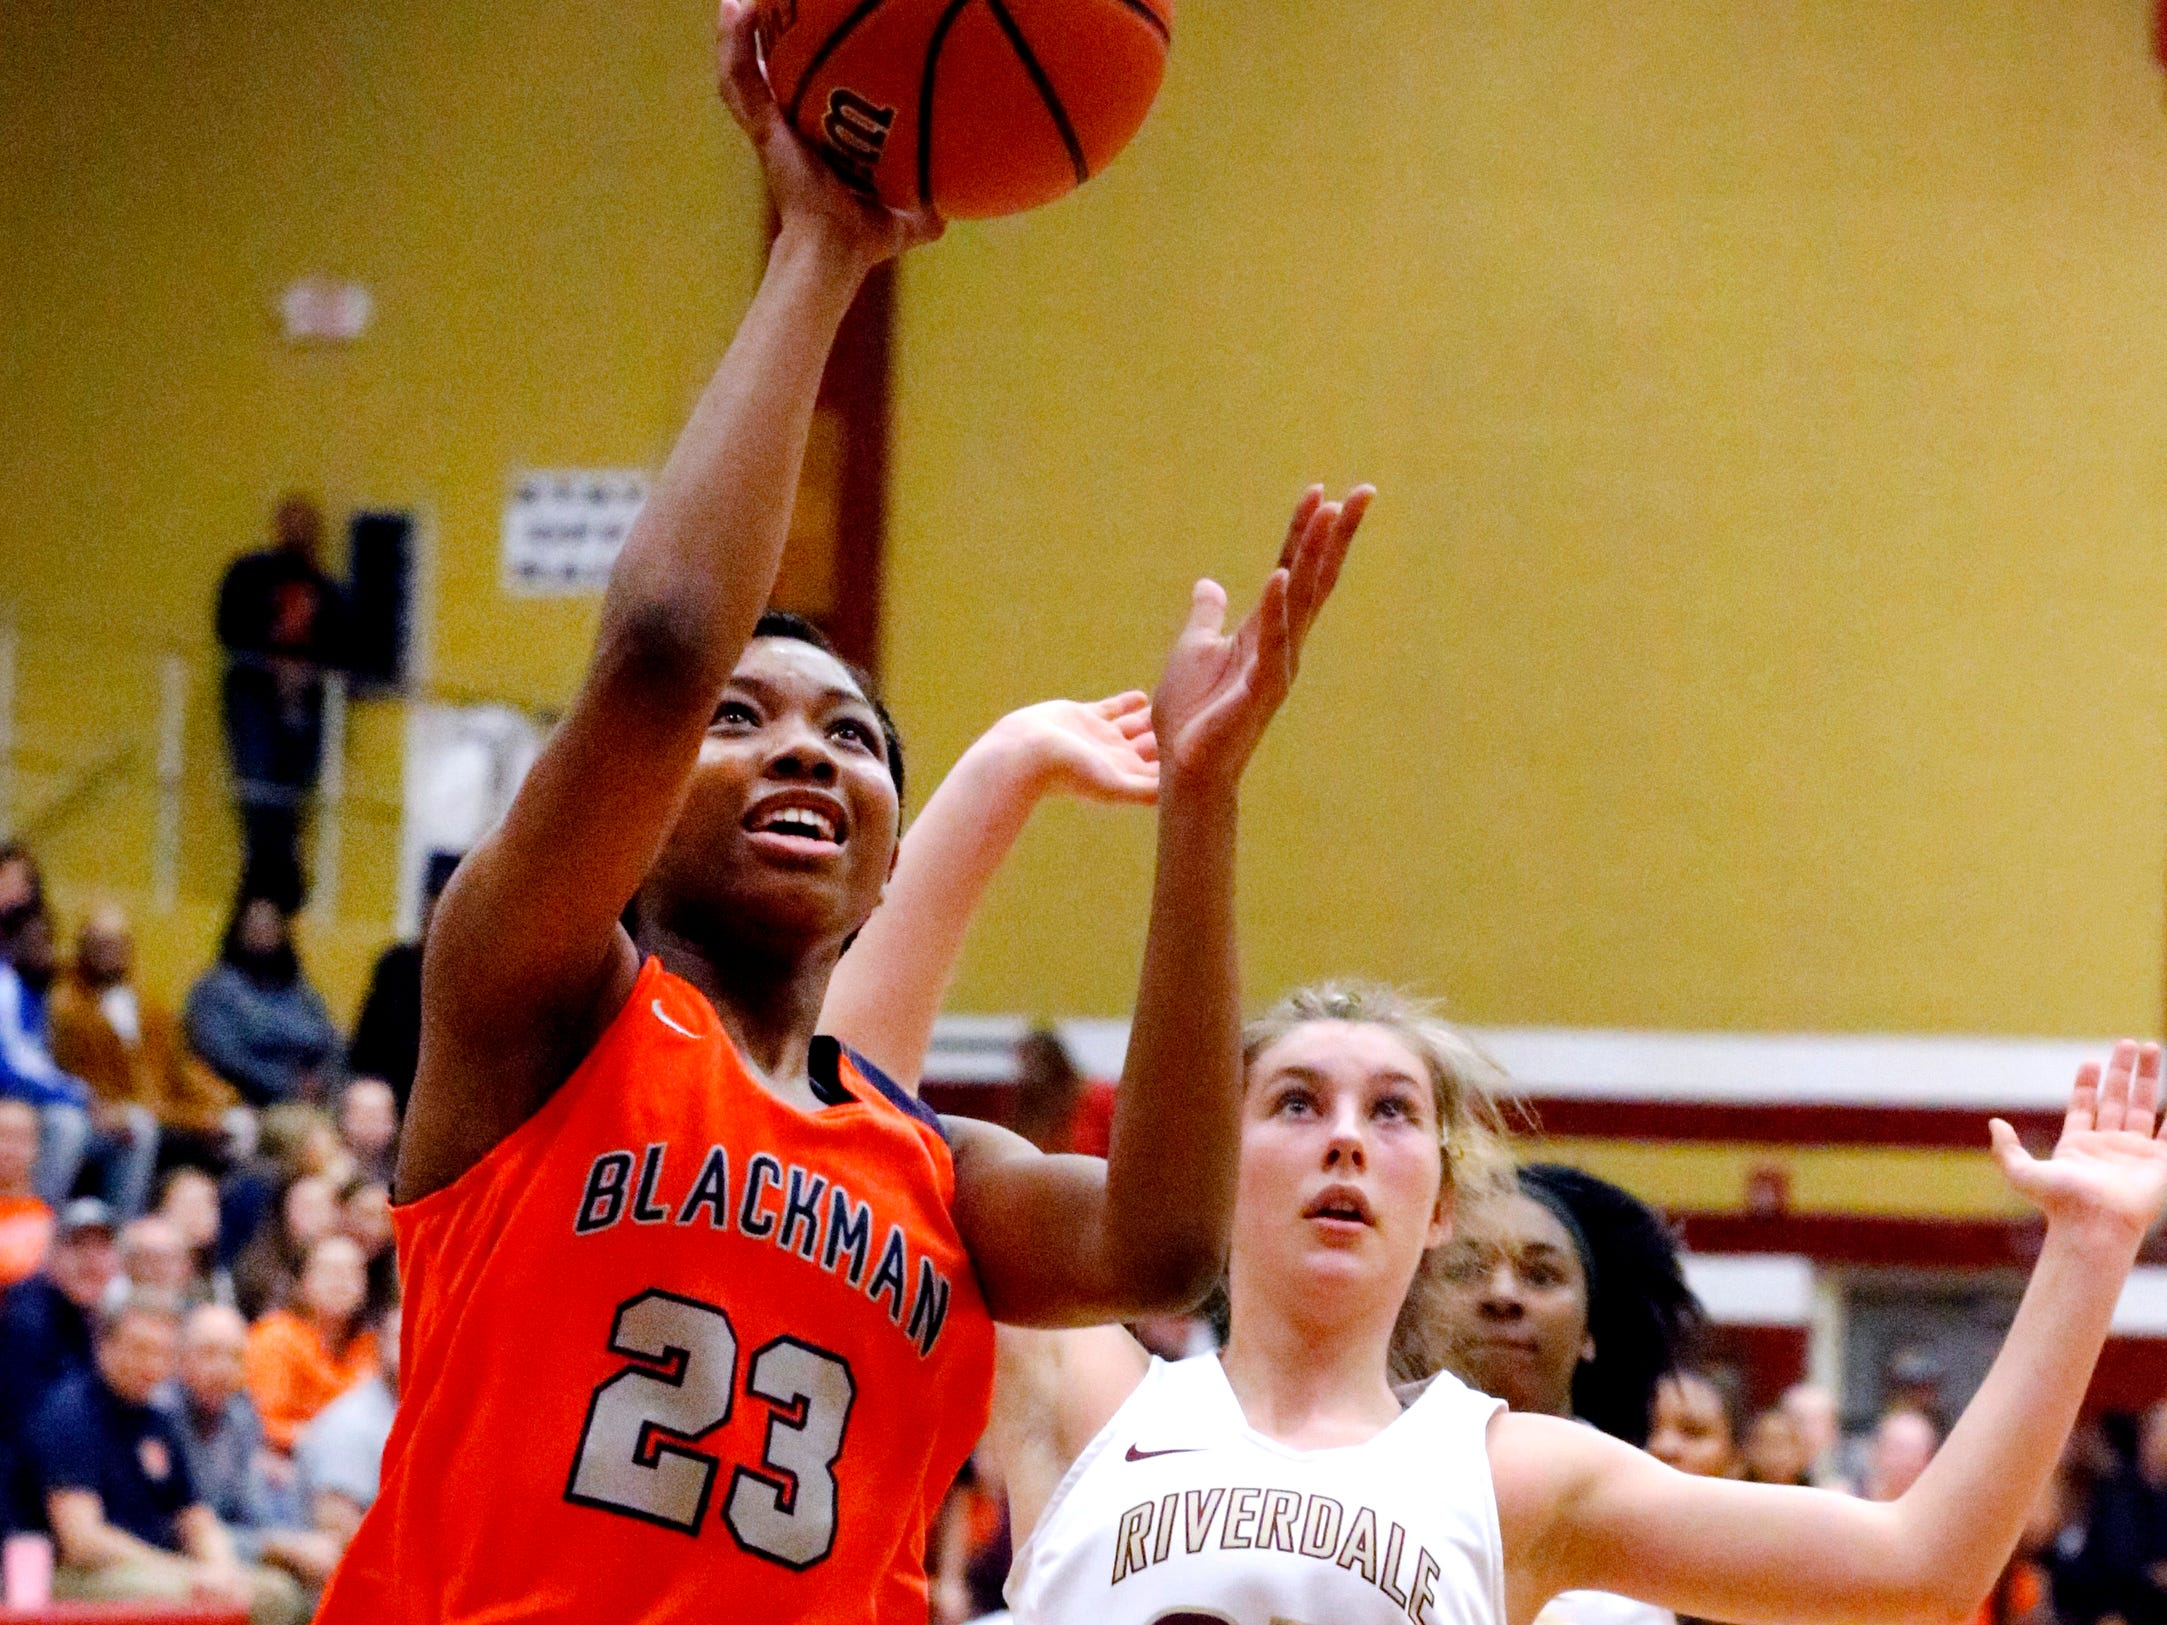 Blackman's Iyana Moore (23) goes up for a shot as Riverdale's Jalyn Hollcomb (23) comes up from behind her on Tuesday Jan. 8, 2019